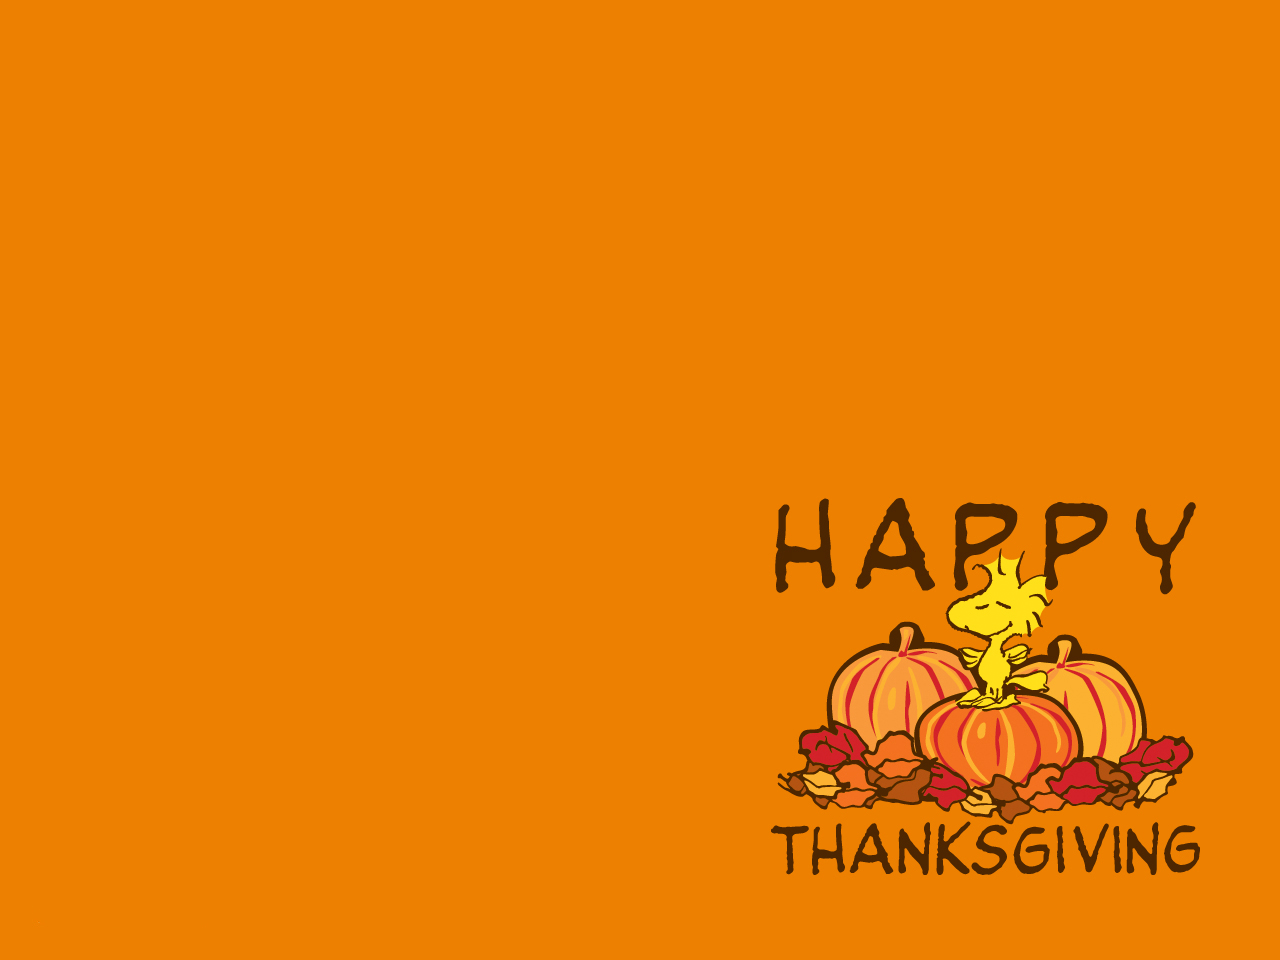 Thanksgiving Day 2012 HD Thanksgiving Wallpapers for iPad and 1280x960